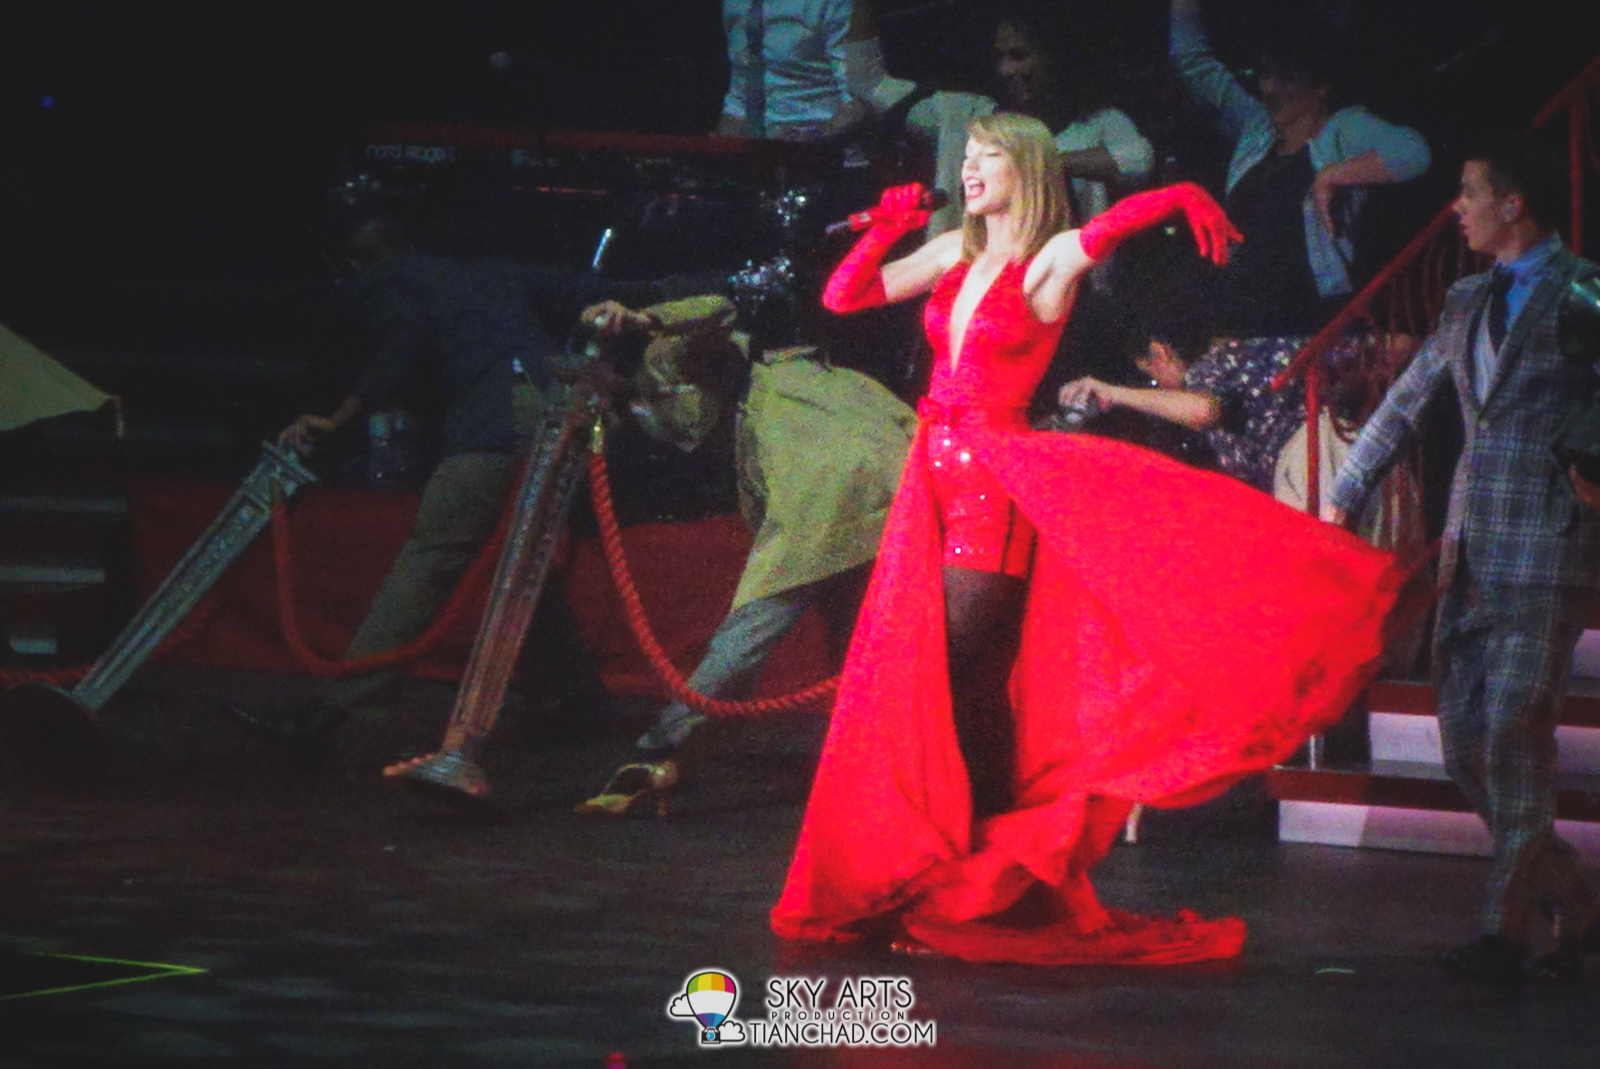 Taylor Swift can flaunt her RED Dress very well!